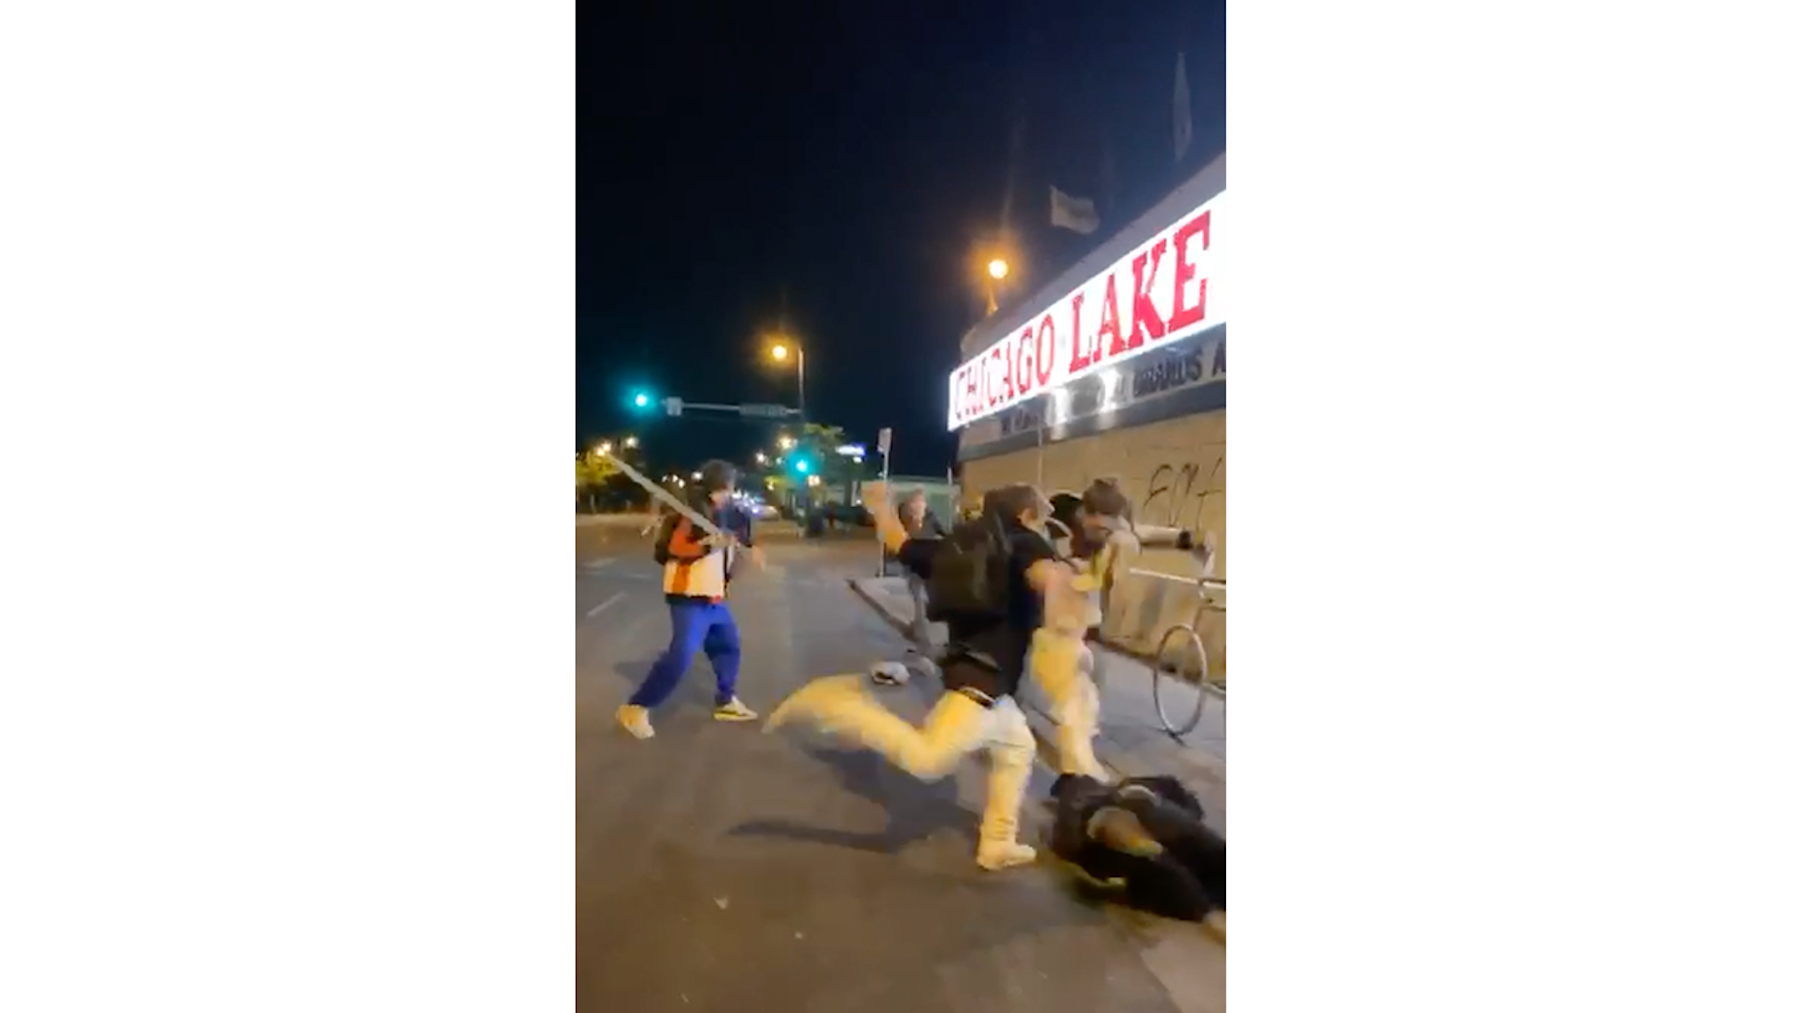 3 Young White Guys With a Machete Beat Up a Nonwhite Protester in Minneapolis - vice